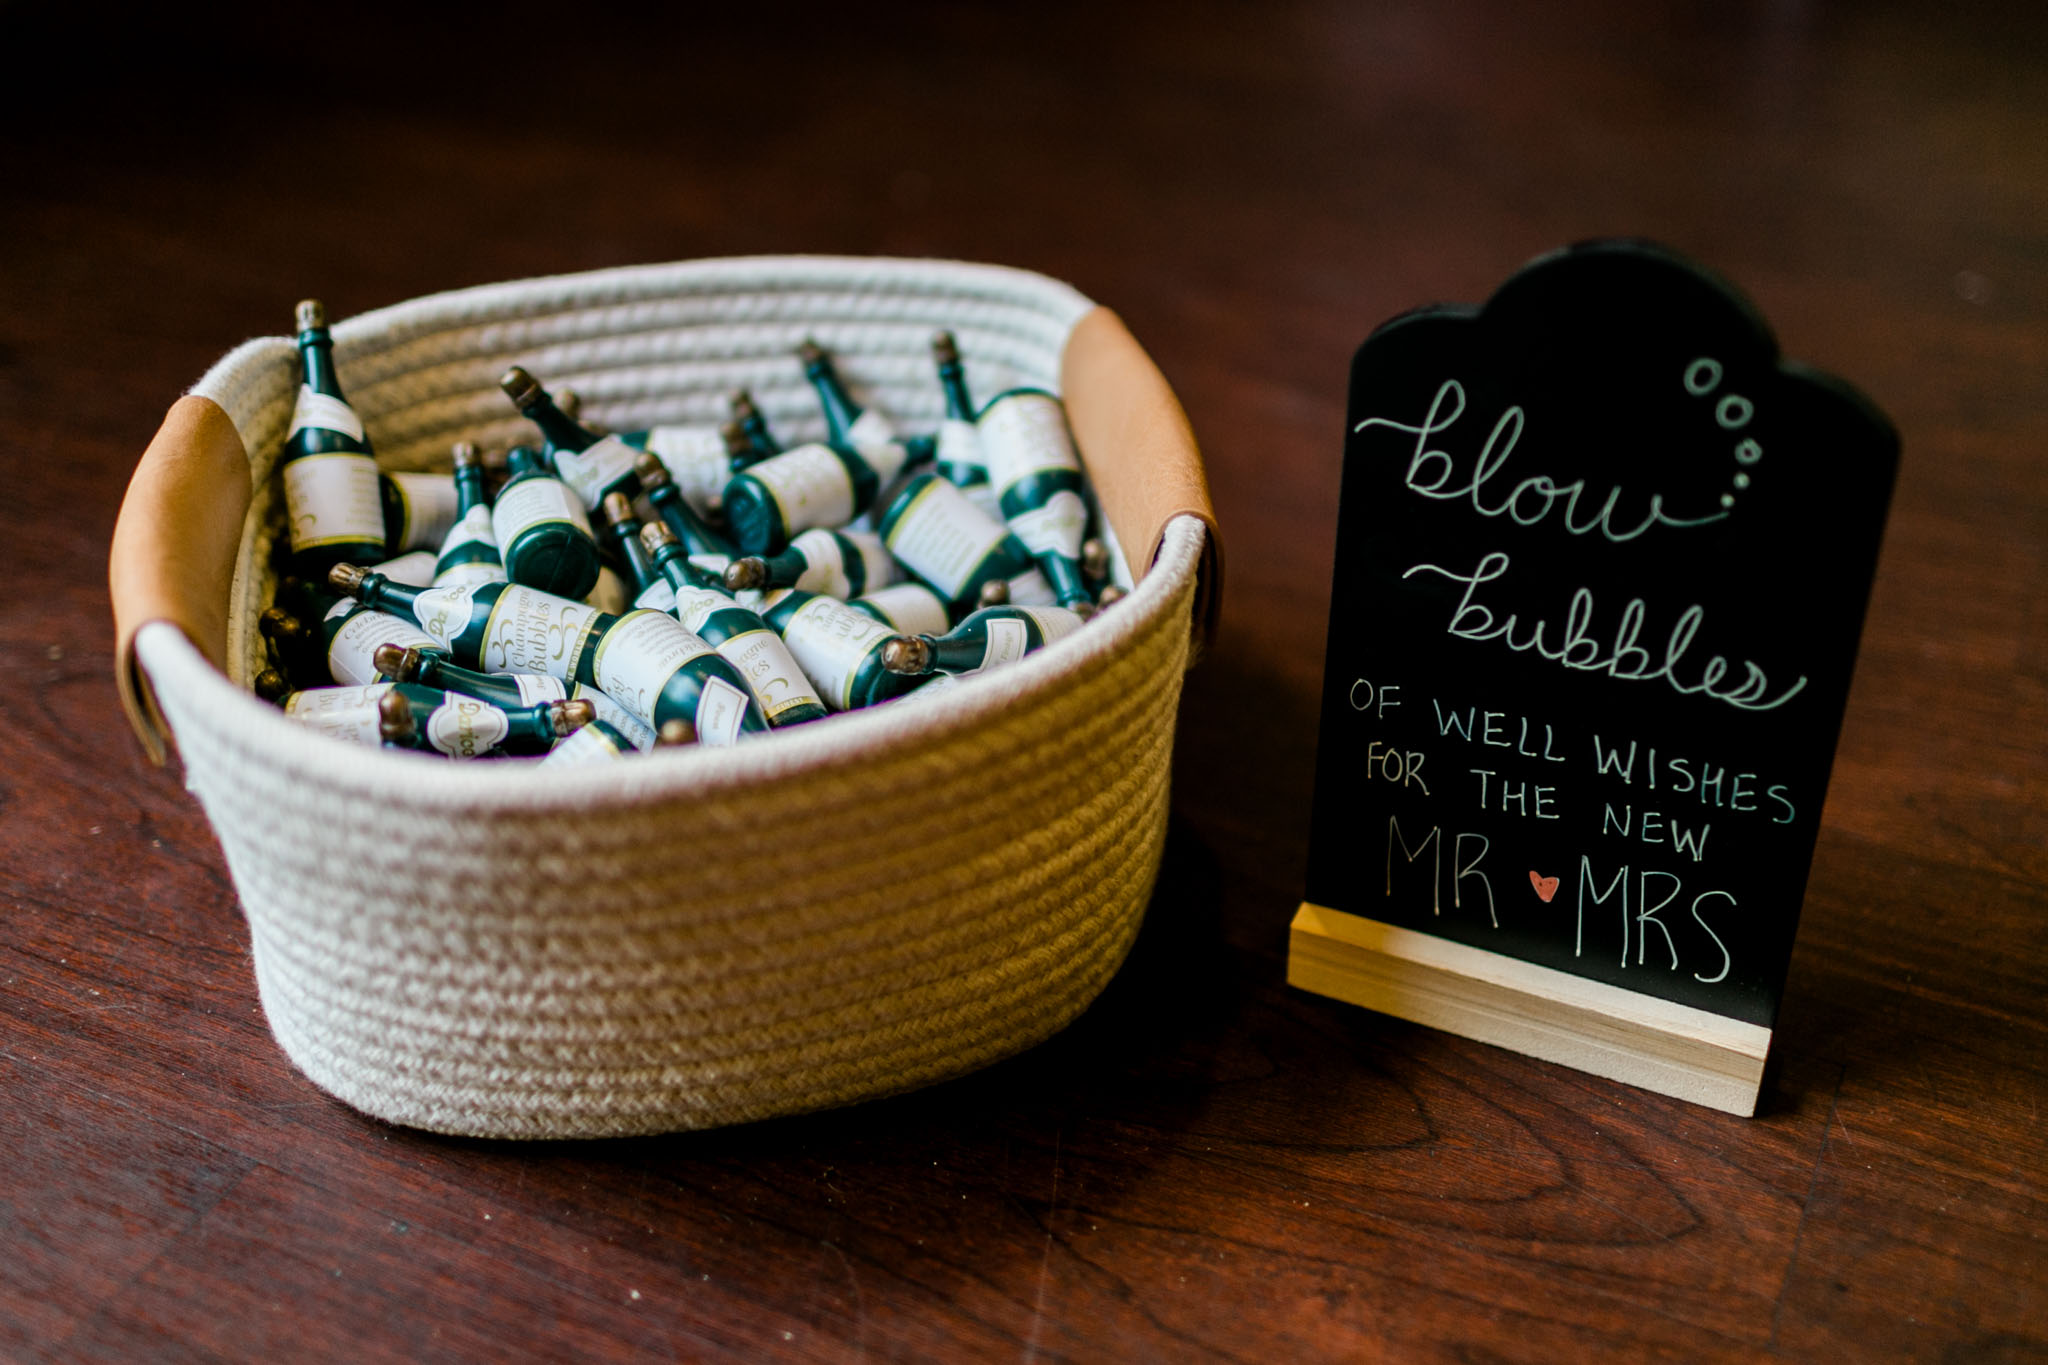 Basket with bubbles for wedding sendoff | Raleigh Wedding Photographer | By G. Lin Photography